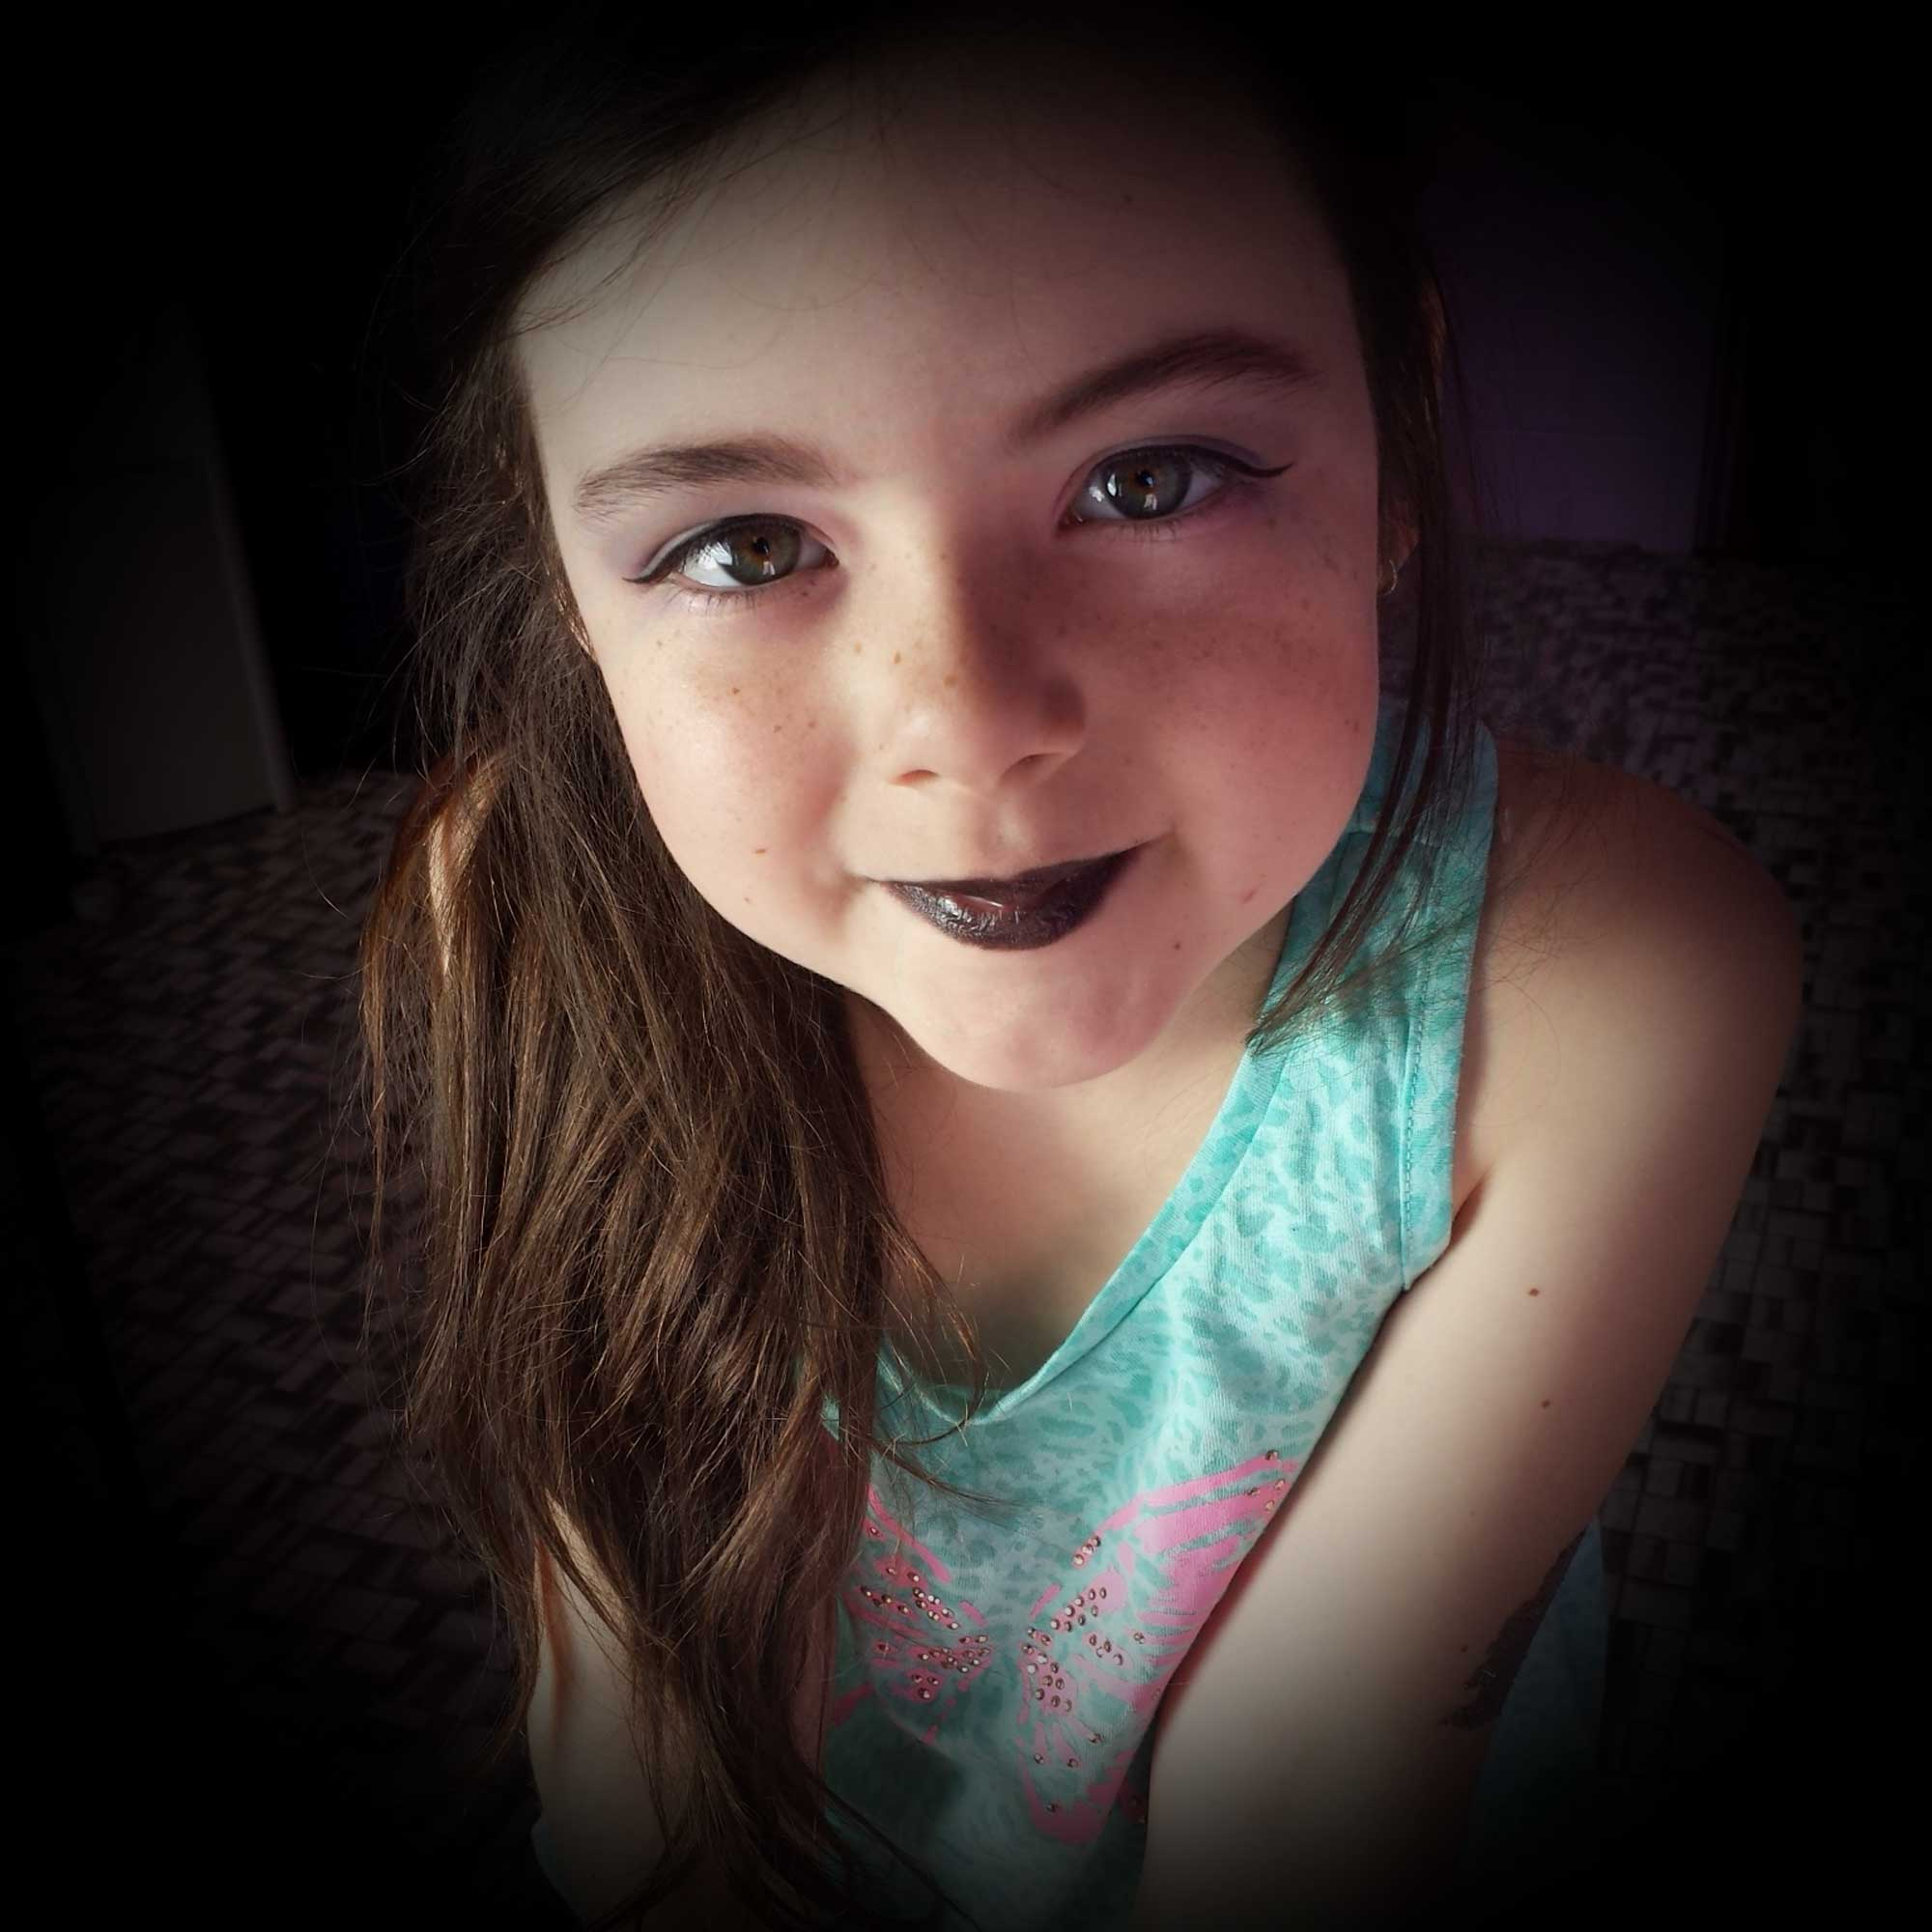 Tookii things to do with kids black makeup